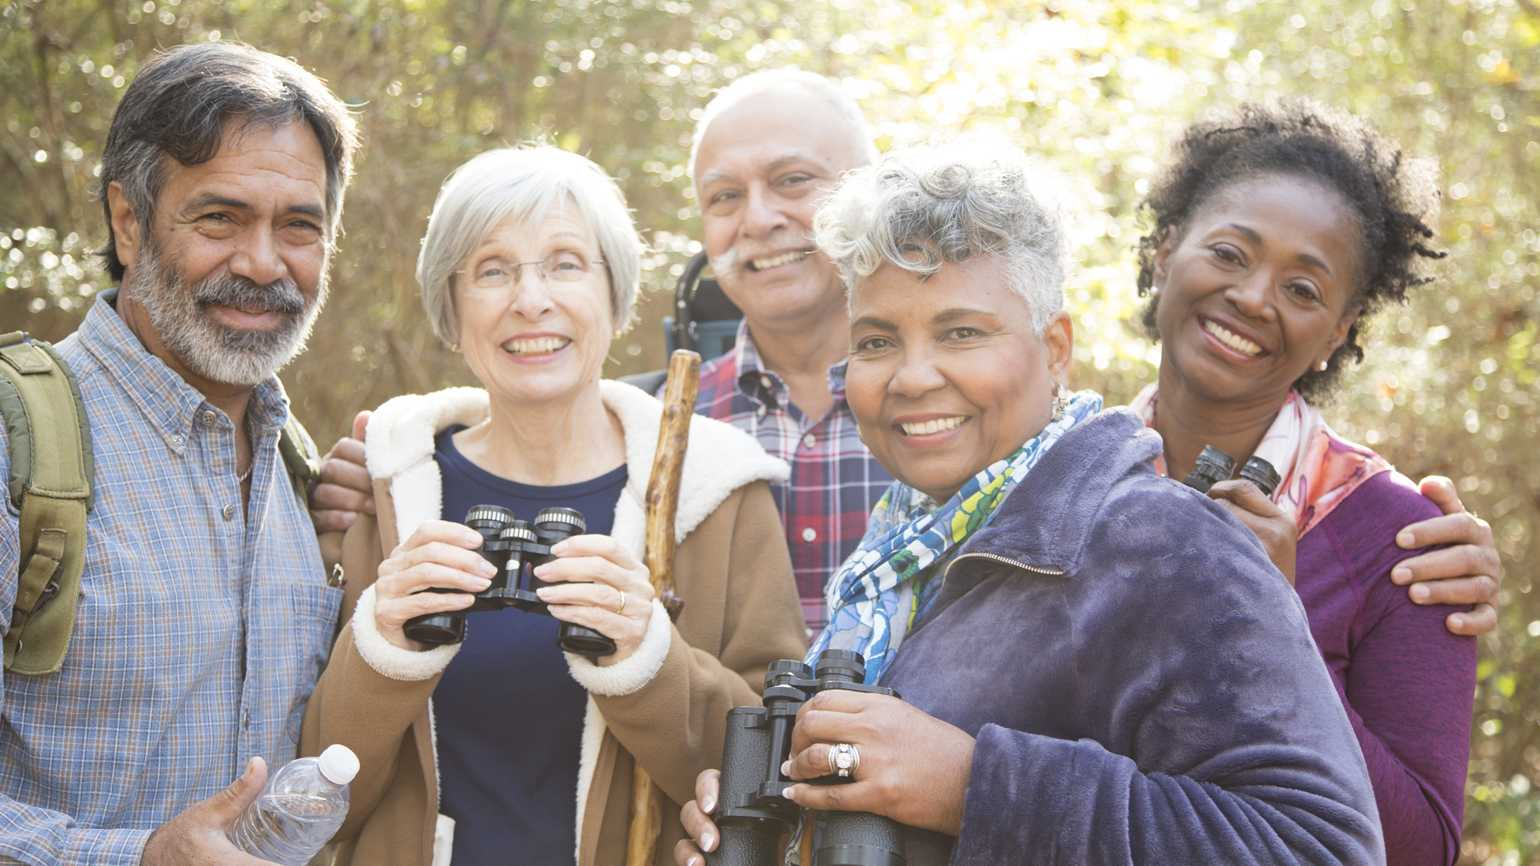 Where To Meet Seniors In Jacksonville No Payments